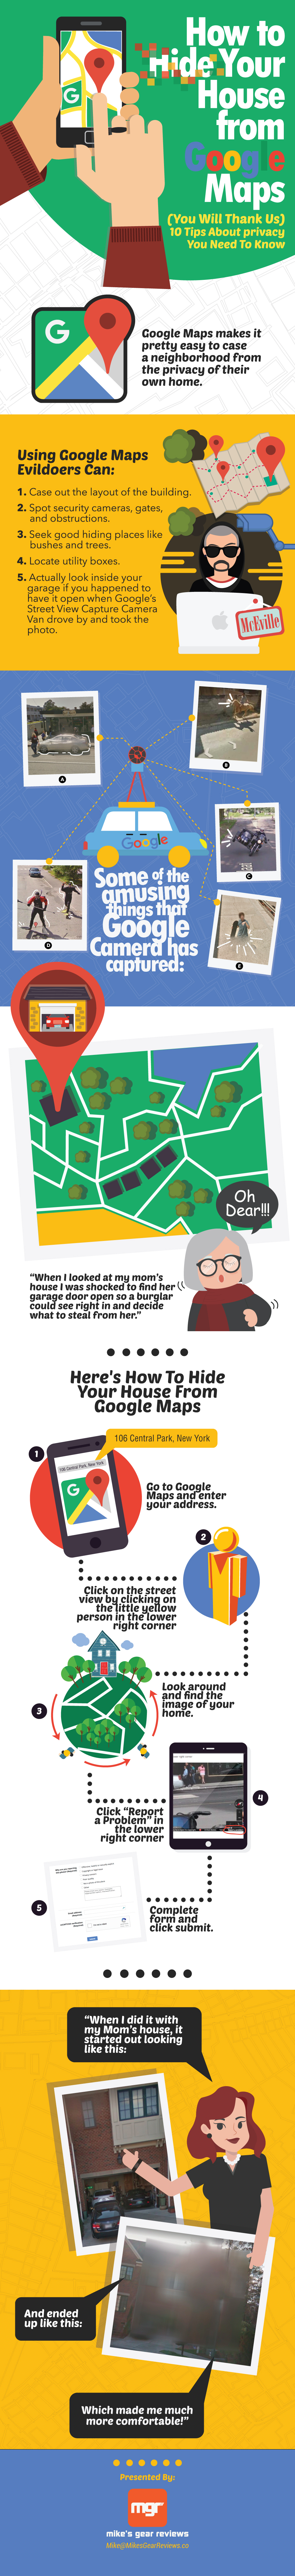 How To Hide Your House From Google Maps